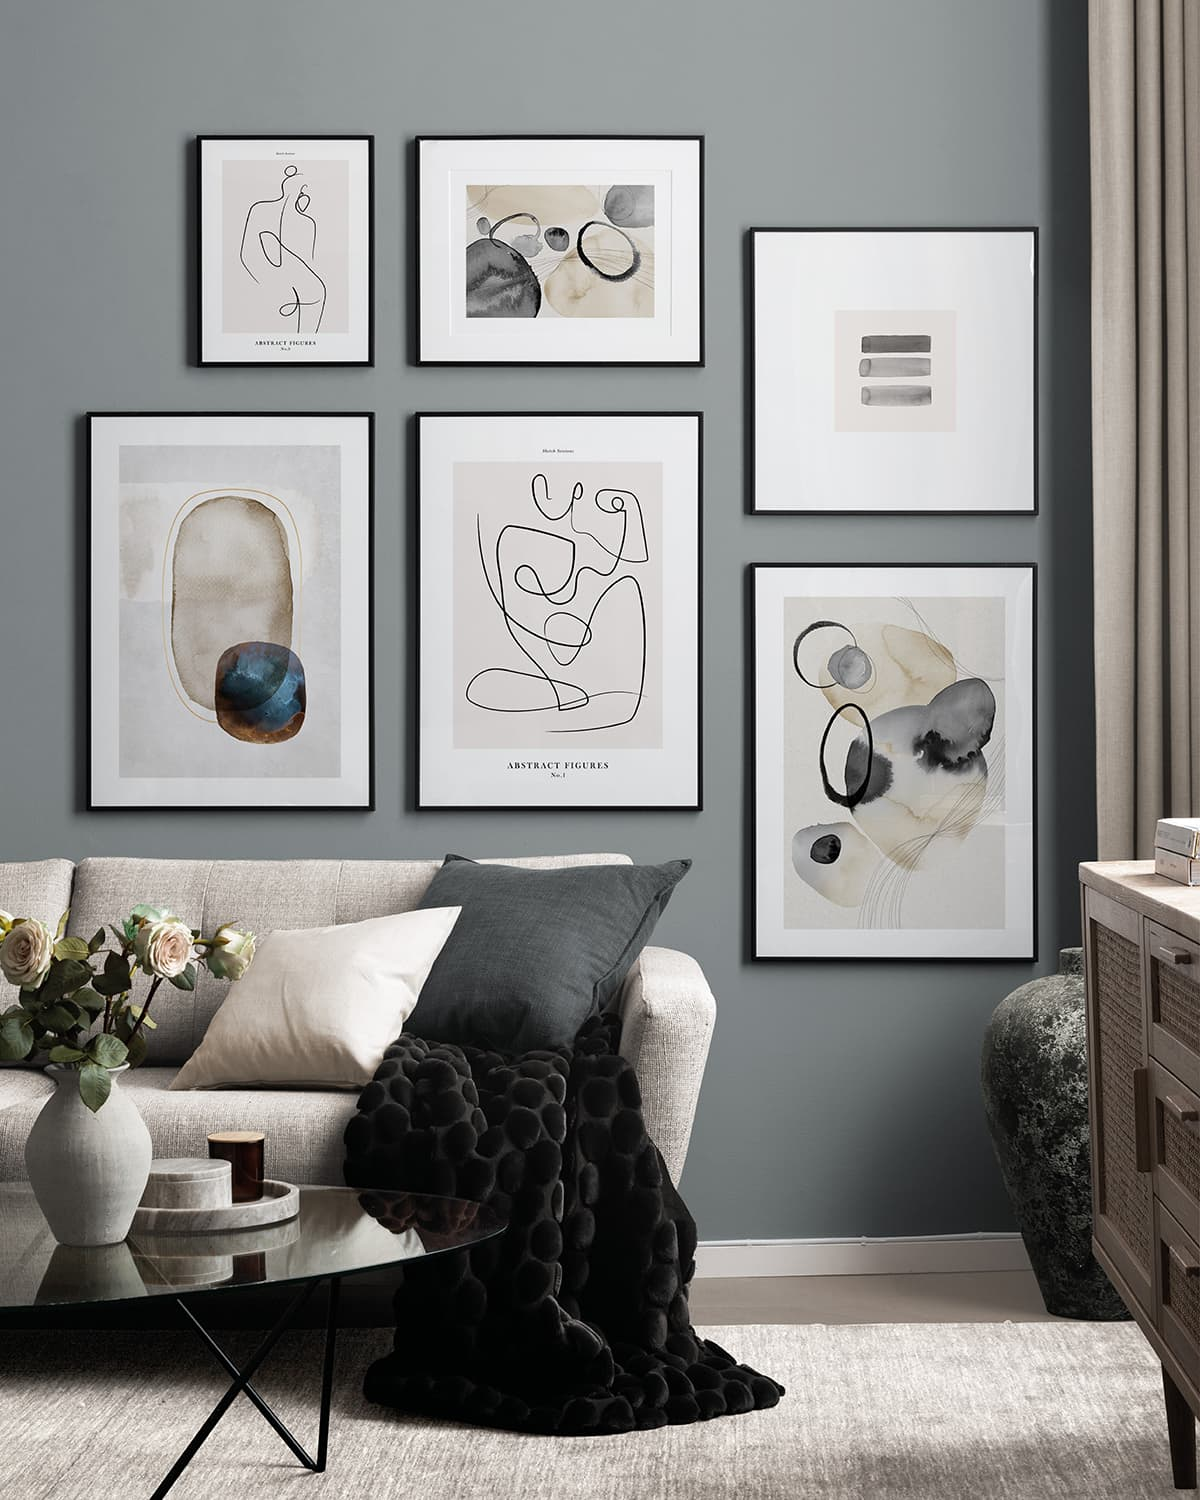 black white and grey gallery wall artworks in living room desenio prints framed on wall